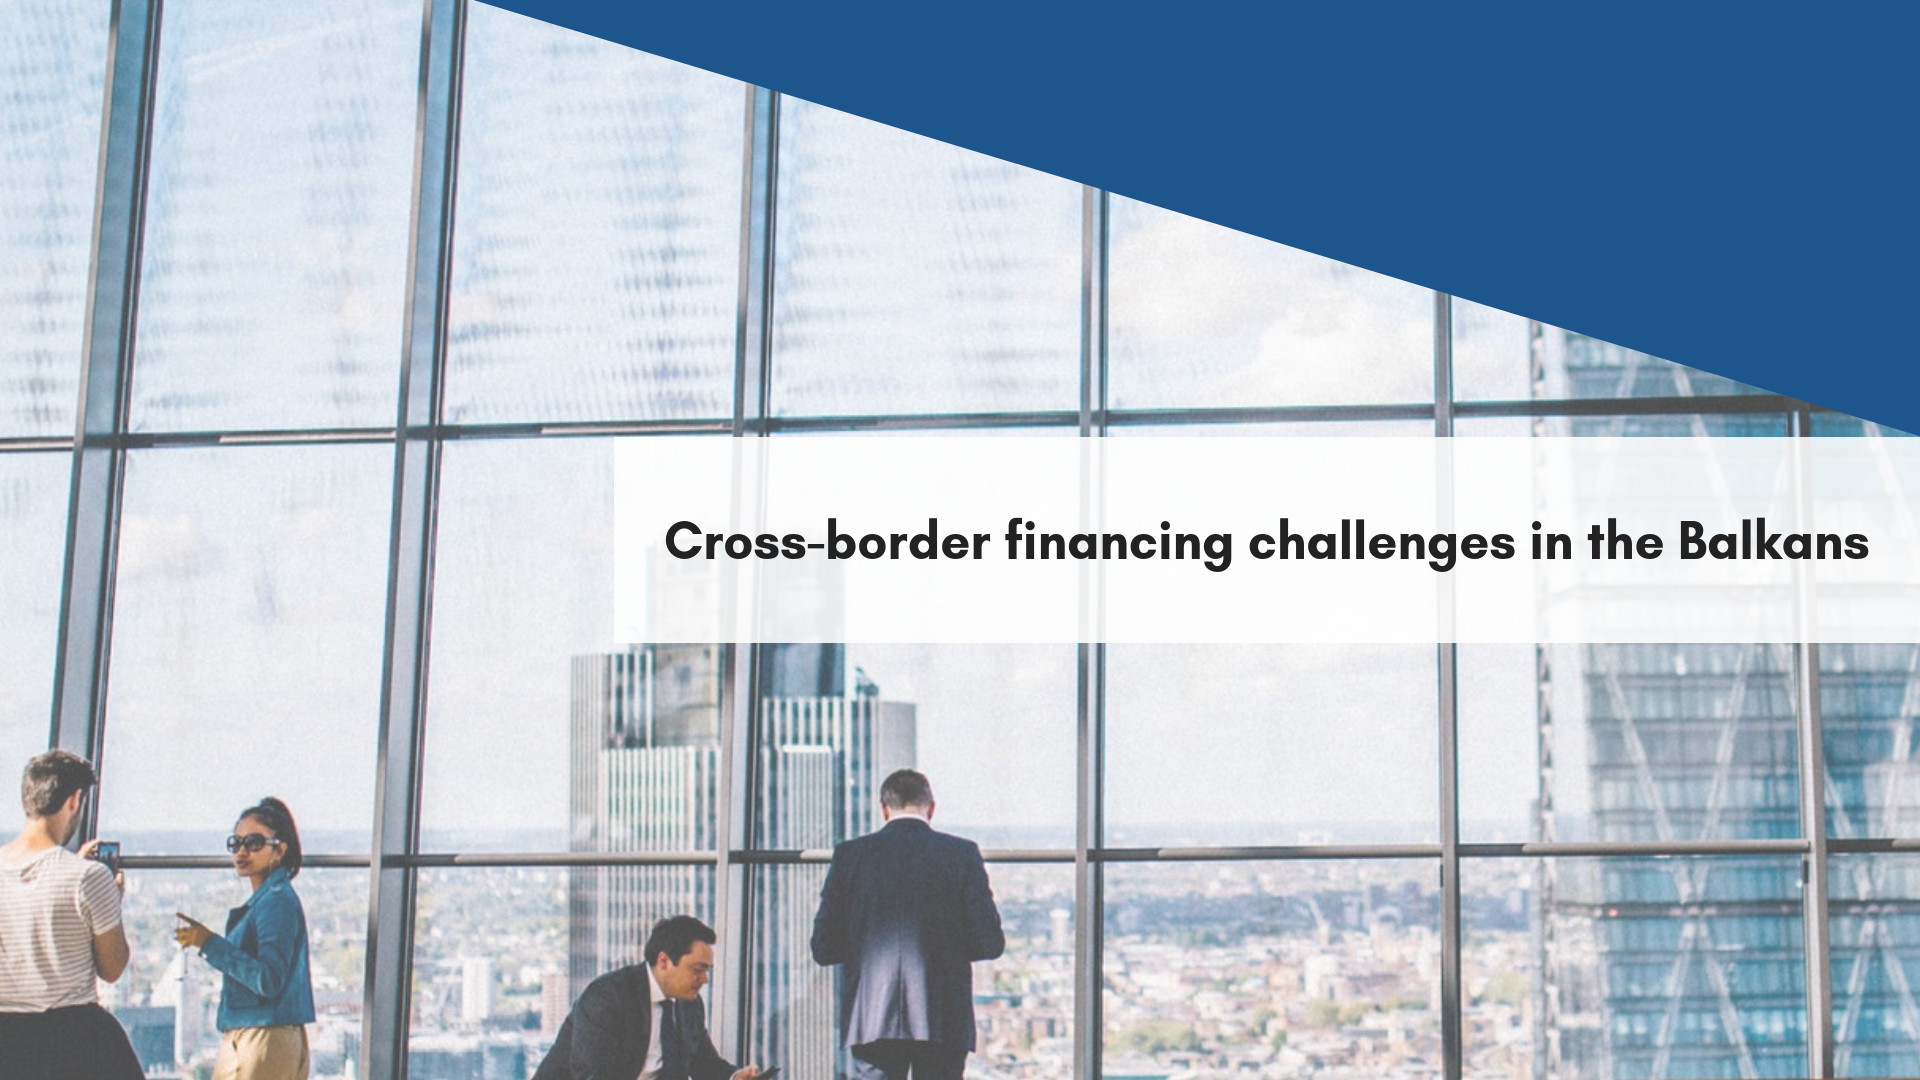 Cross-border financing challenges in the Balkans – a never ending story